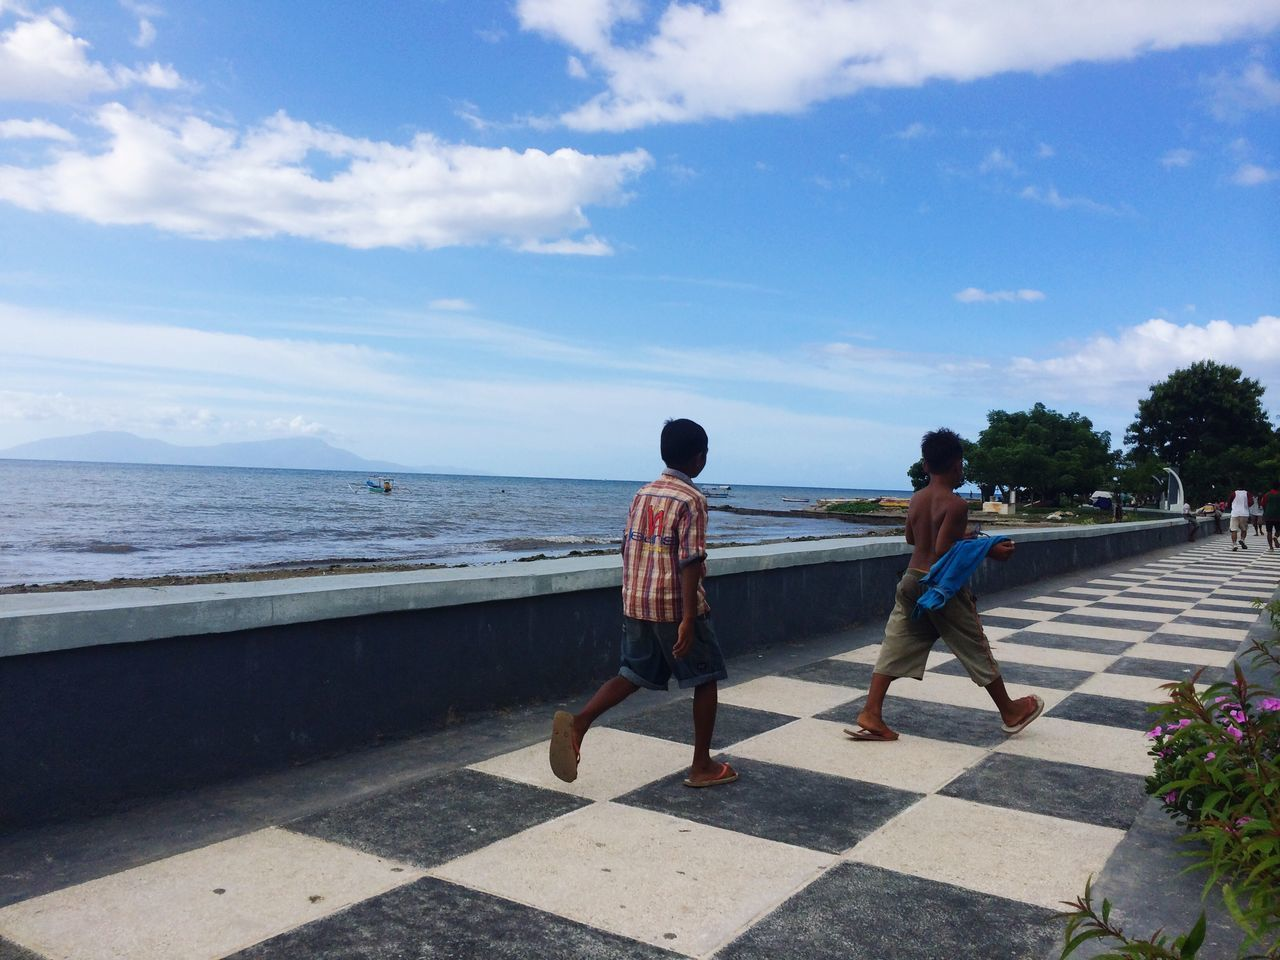 Rear View Of Boys Walking On Tiled Walkway By Sea Against Sky